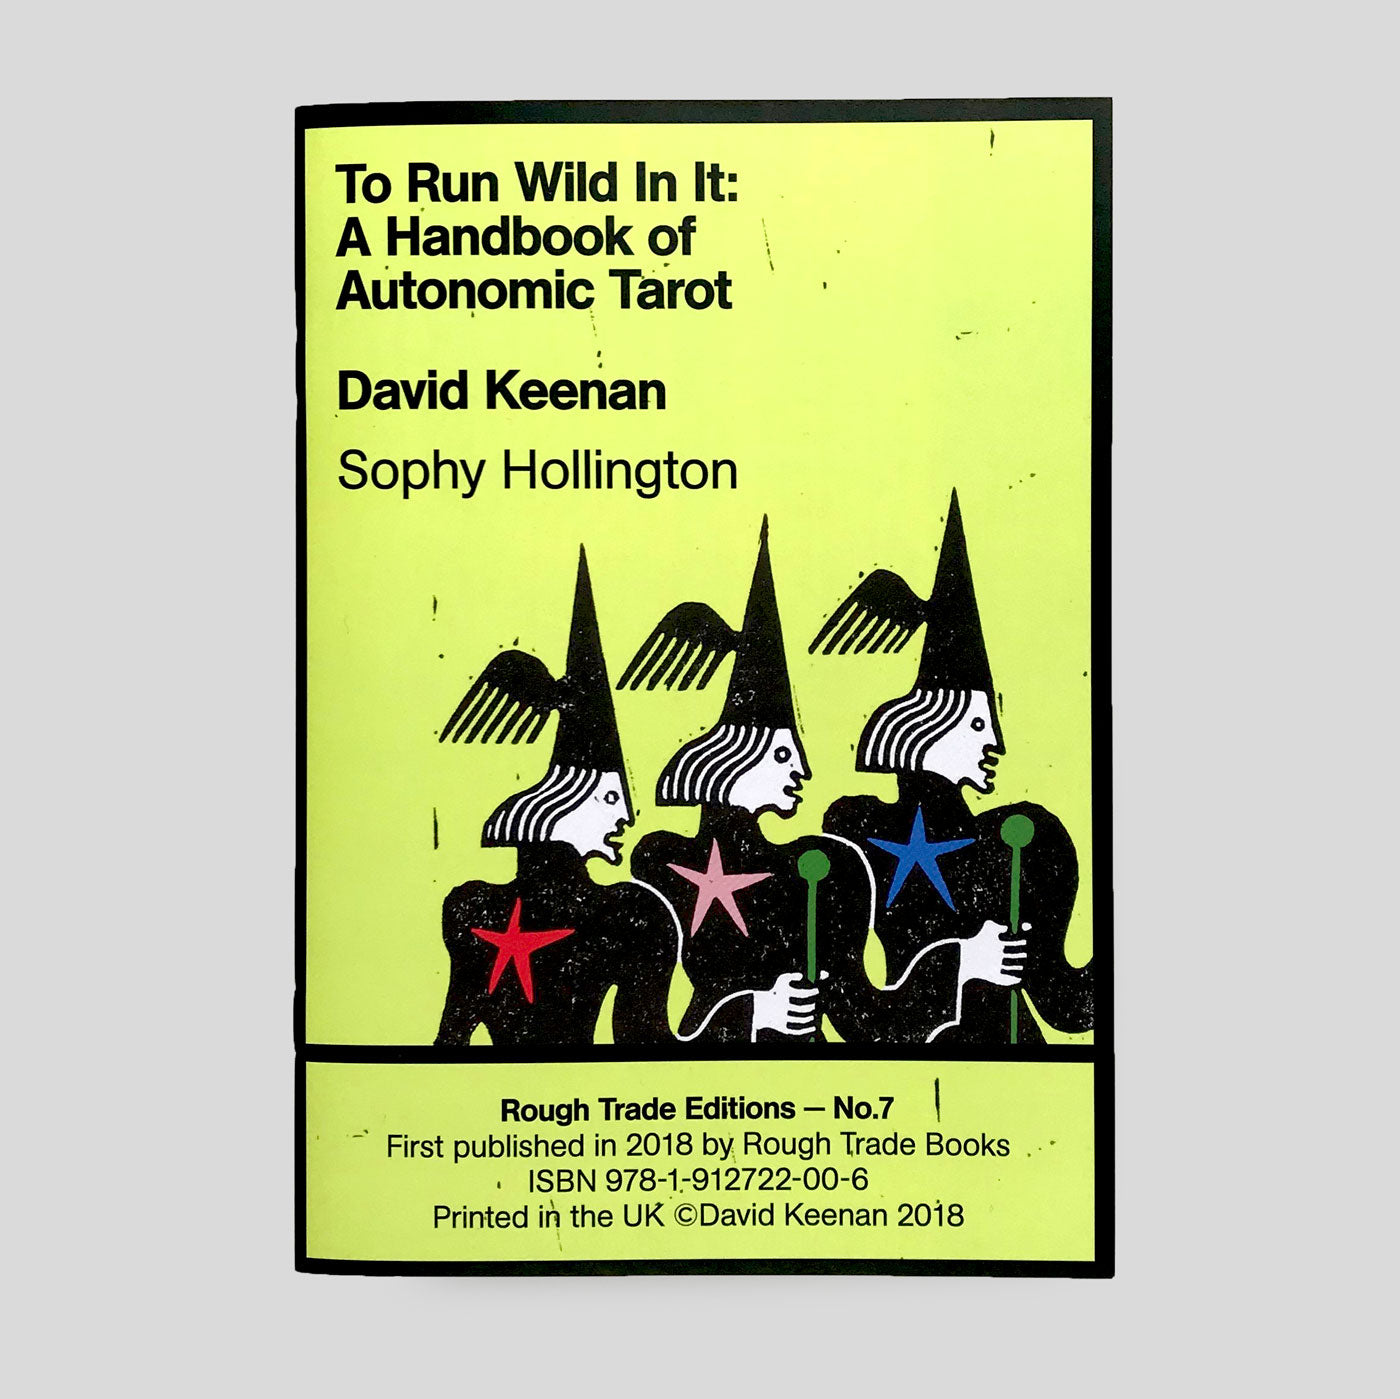 David Keenan and Sophy Hollington - To Run Wild With It: A Handbook of Autonomic Tarot